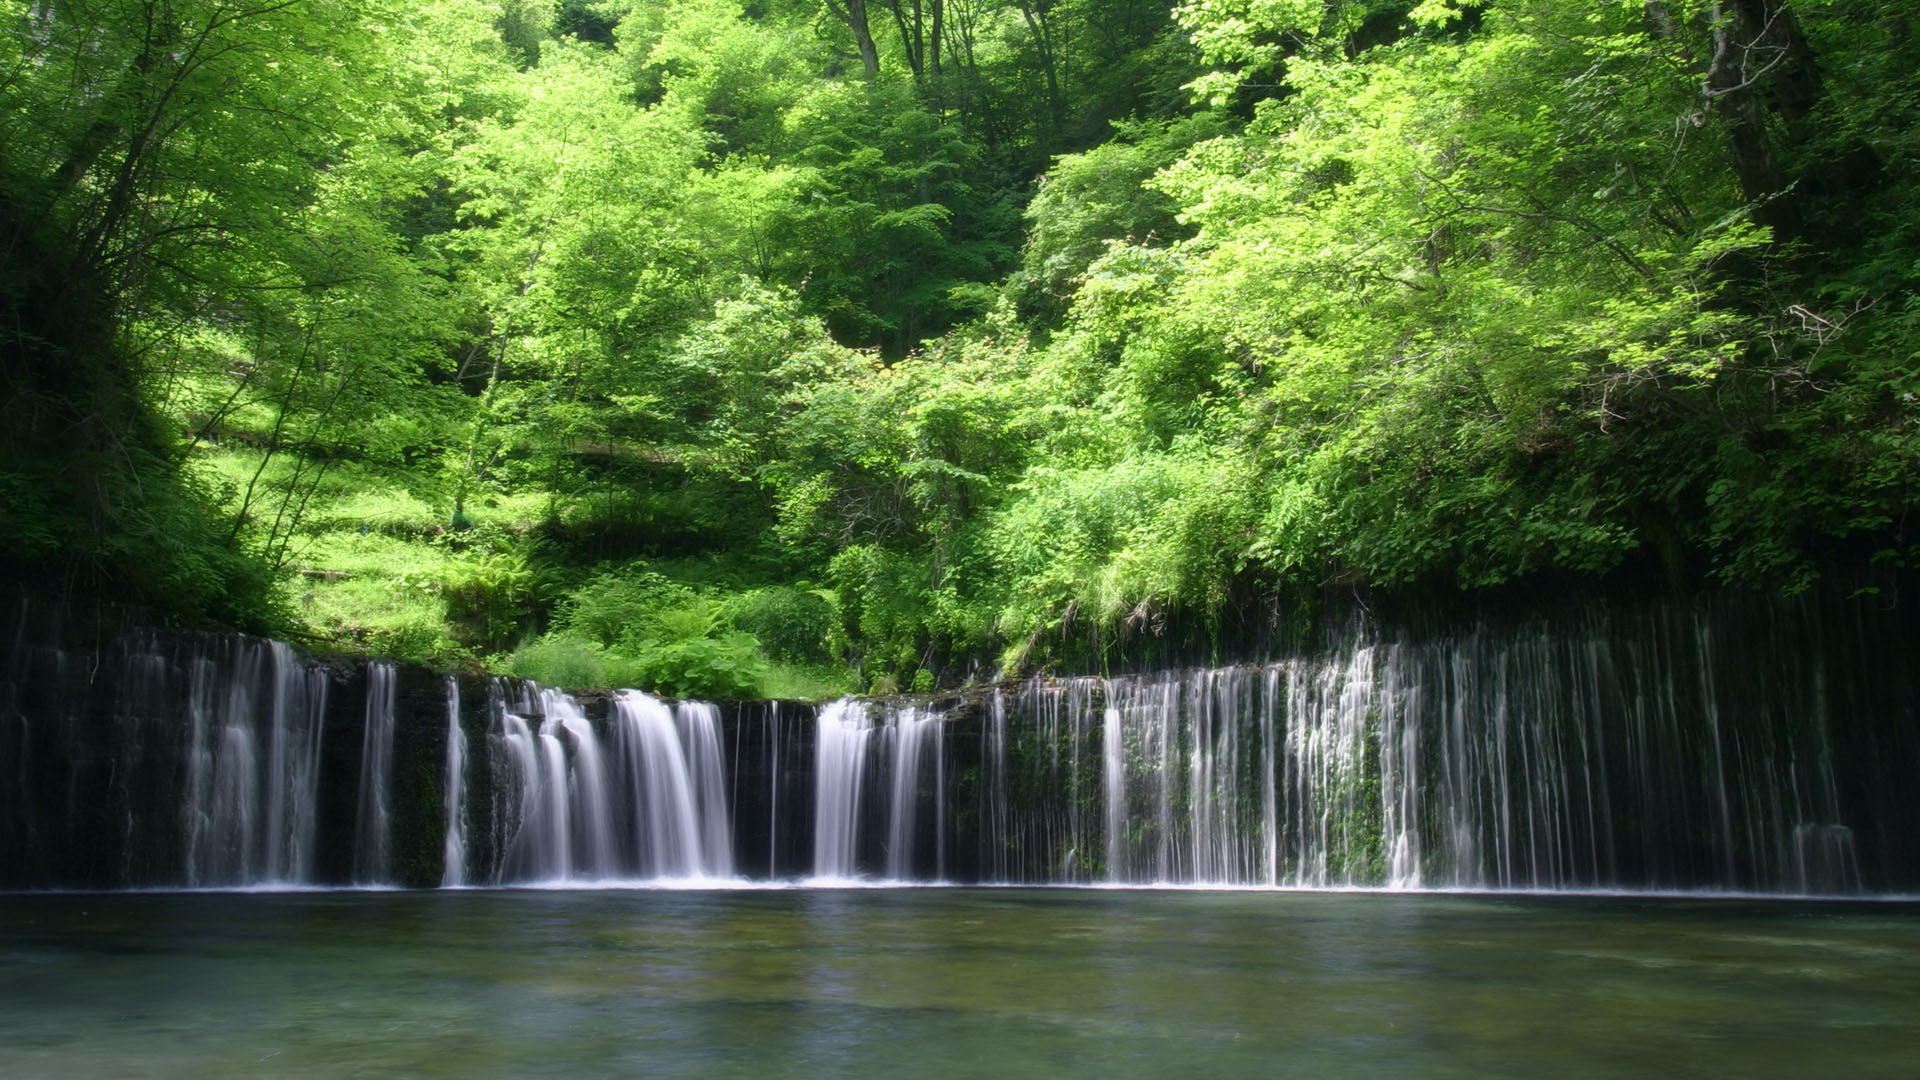 Amazing-Waterfall-1920x1080-wallpaper-wp34012047